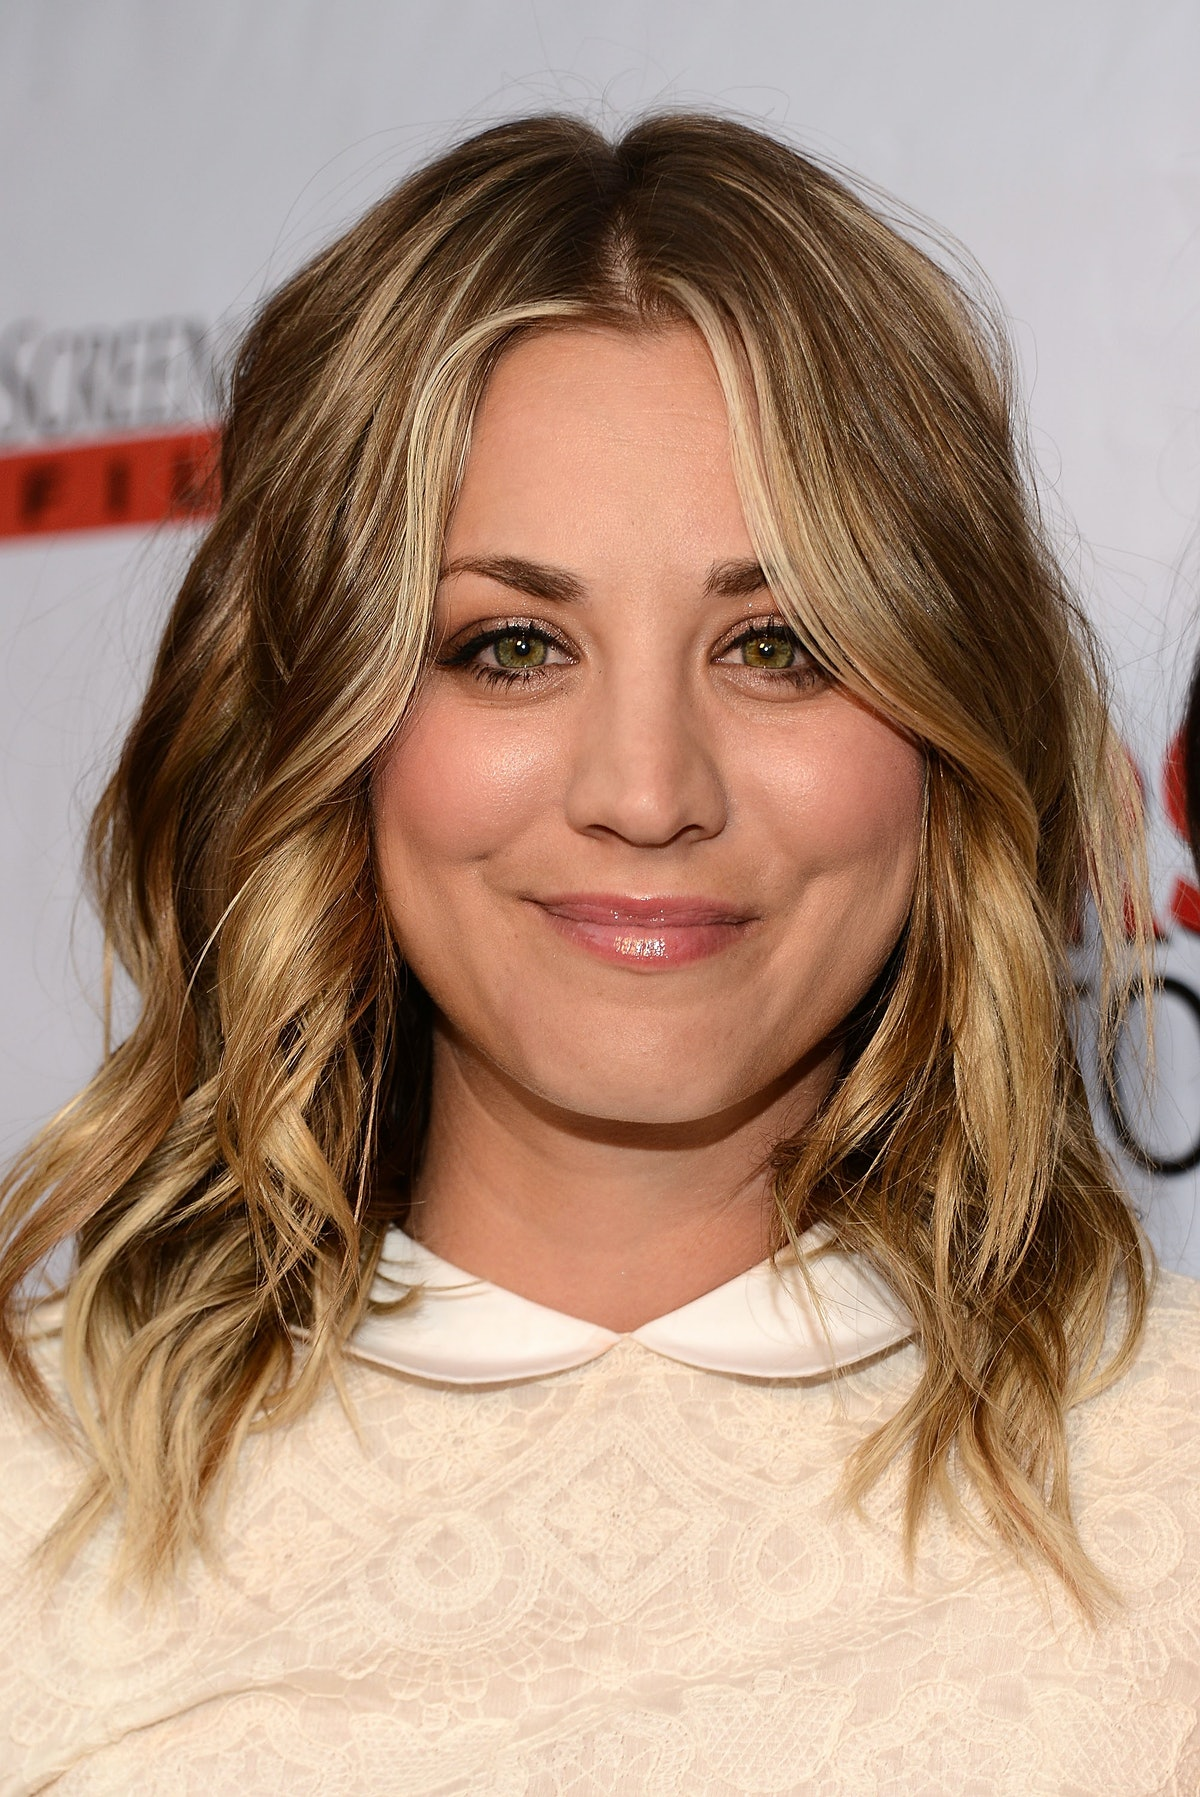 12 amazing kaley cuoco red carpet moments in honor of the